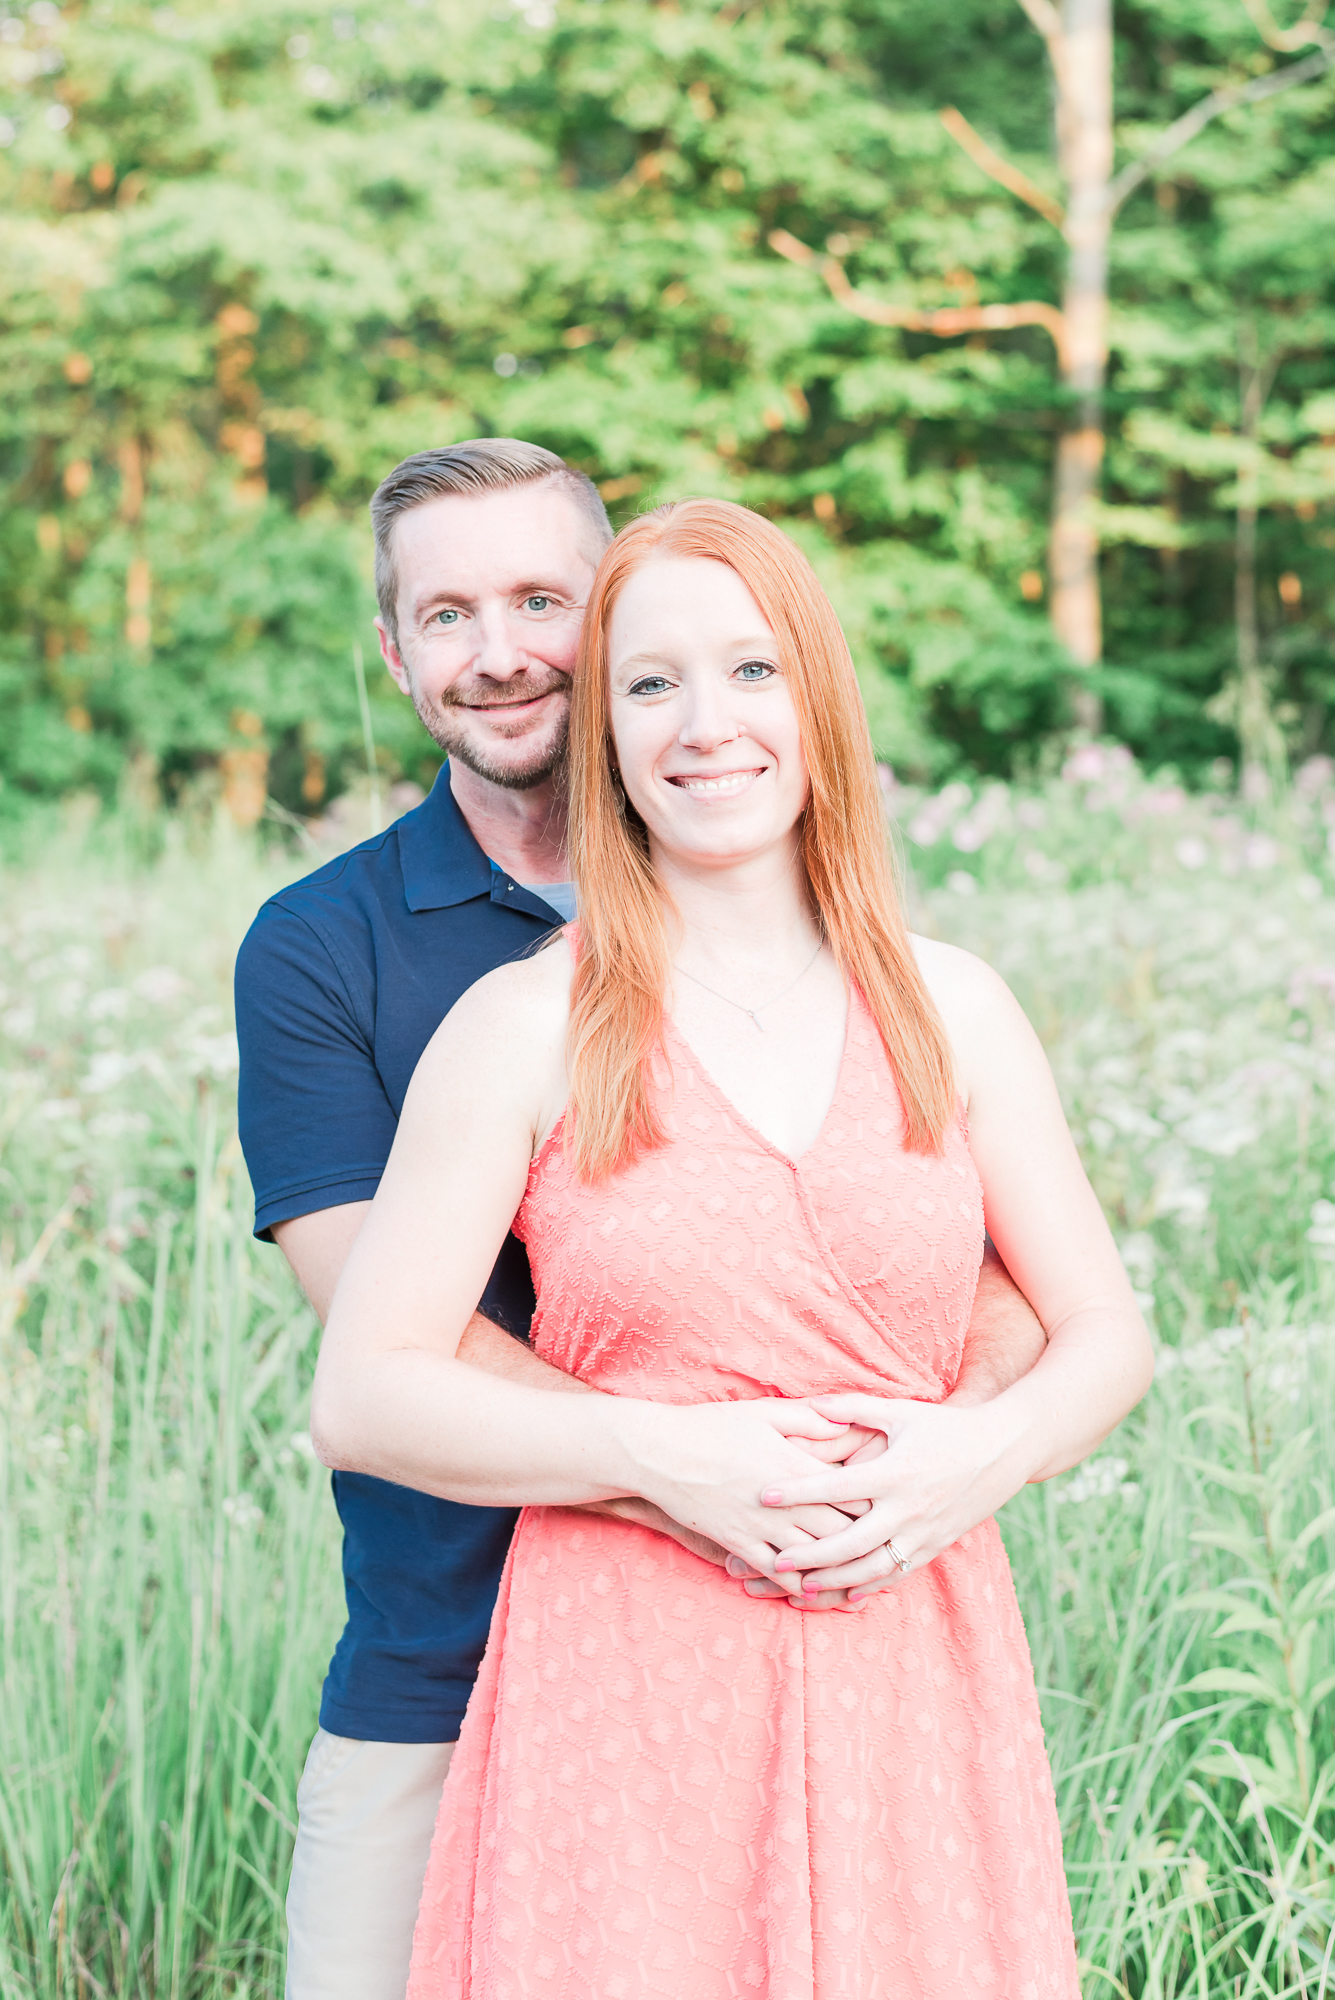 AB Favorites_Katy+Brian_Engagement Session_Brecksville Reservation_Brecksville_Ohio-27.jpg